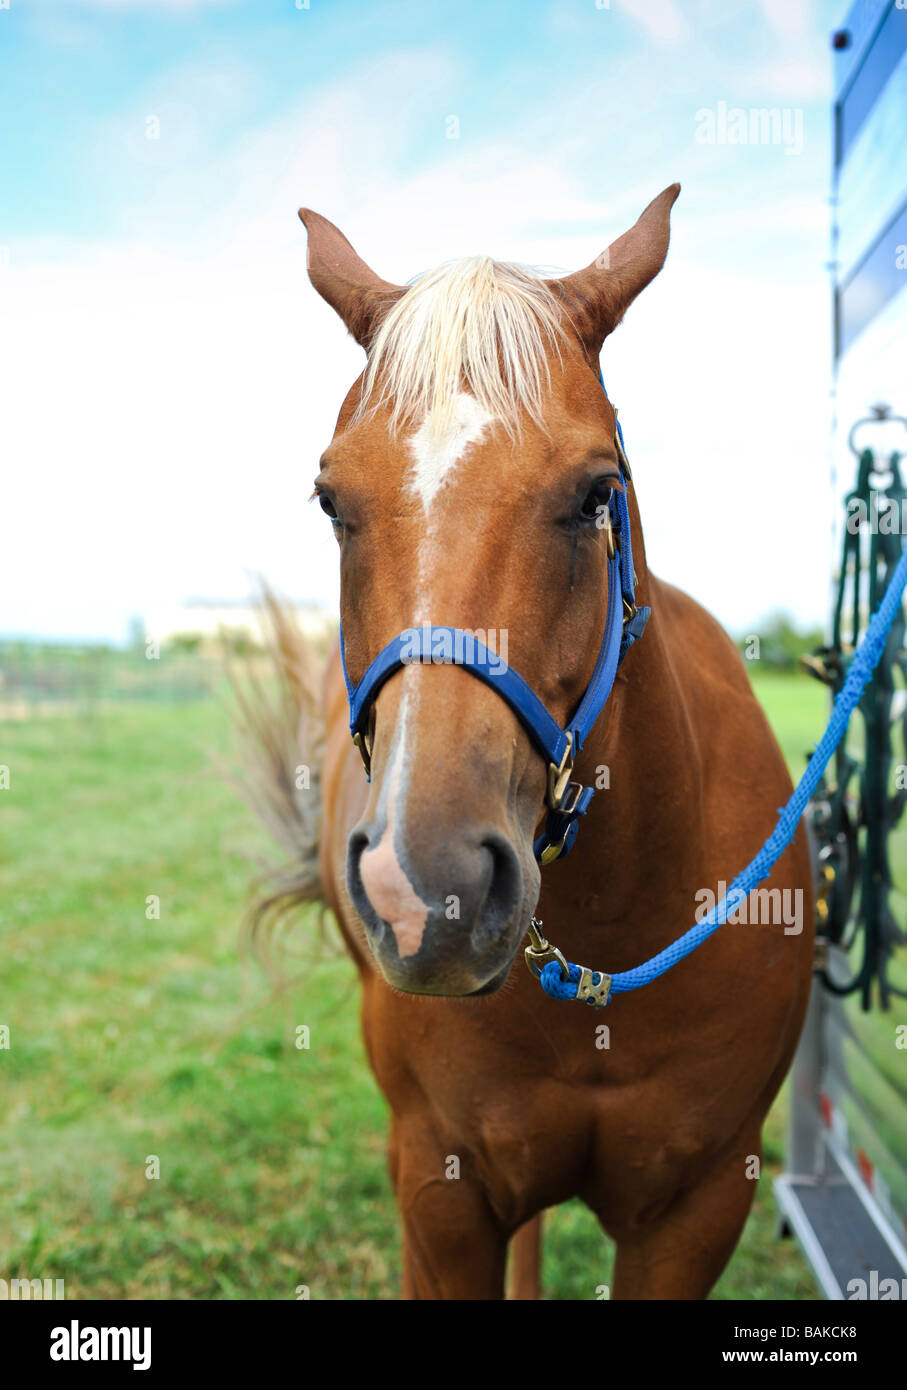 Horse tethered to a trailer at a rodeo - Stock Image